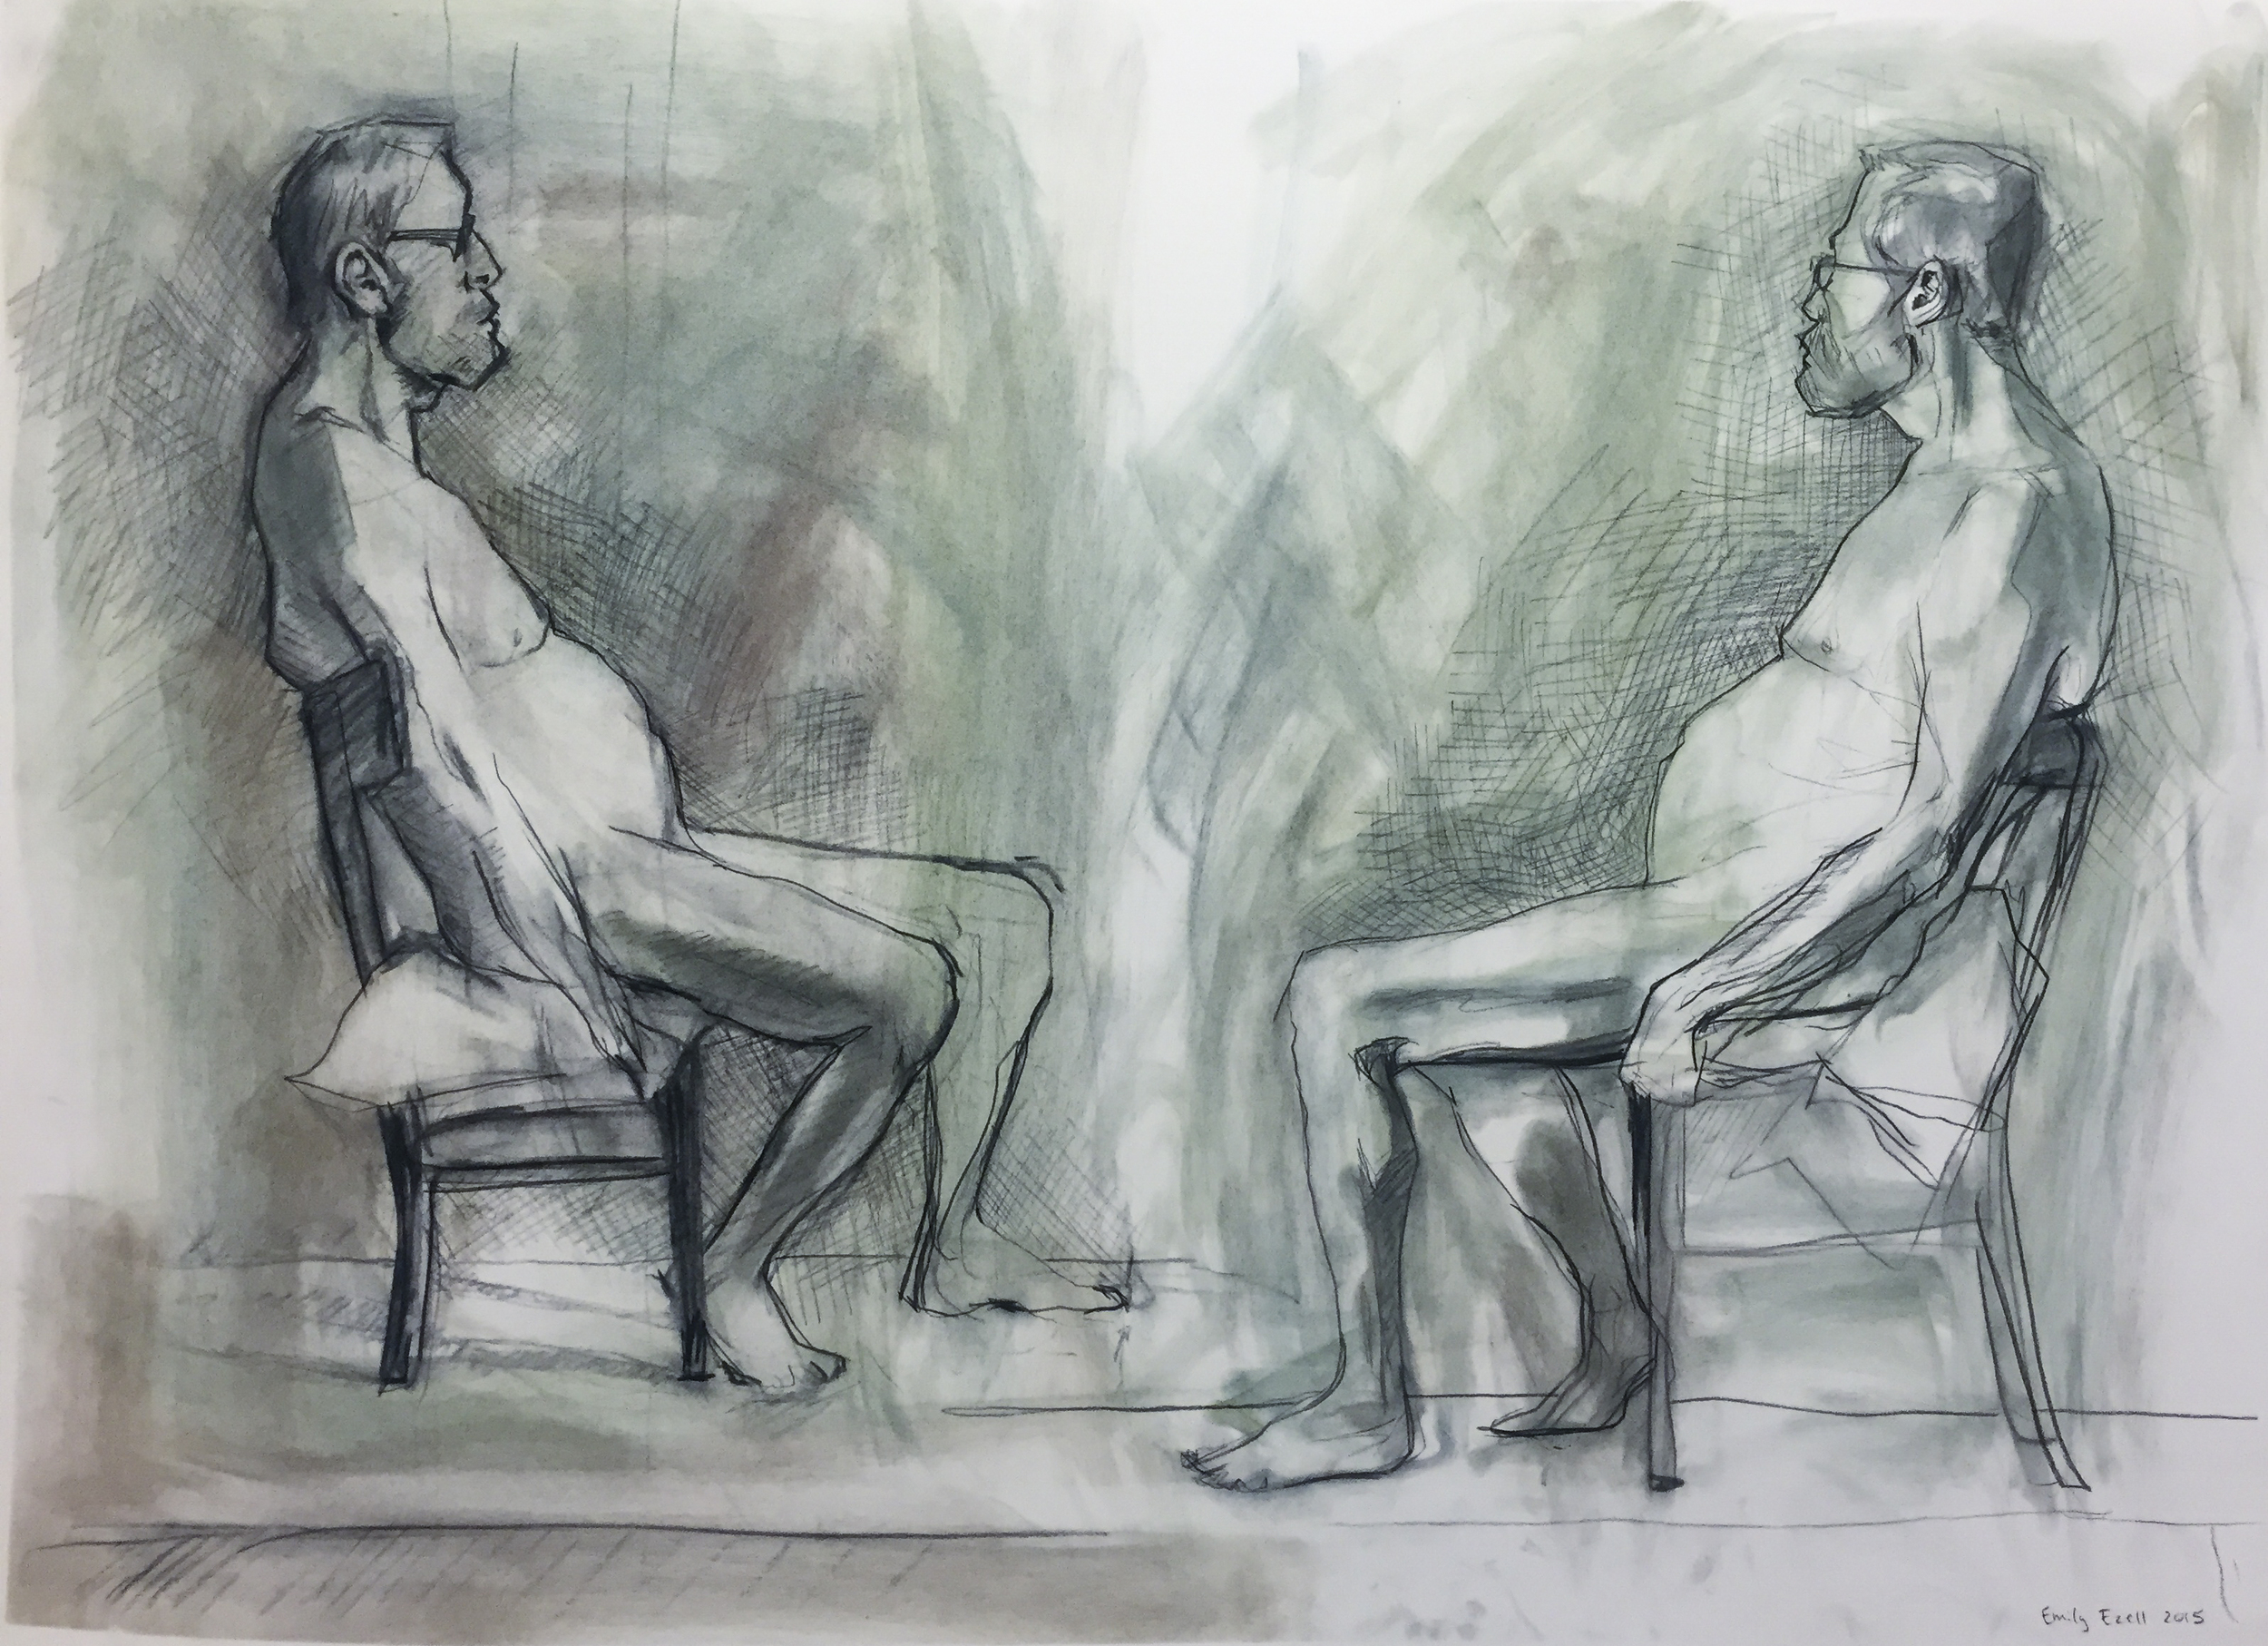 Mirror Figures, 2015, 30 x 22 charcoal on paper